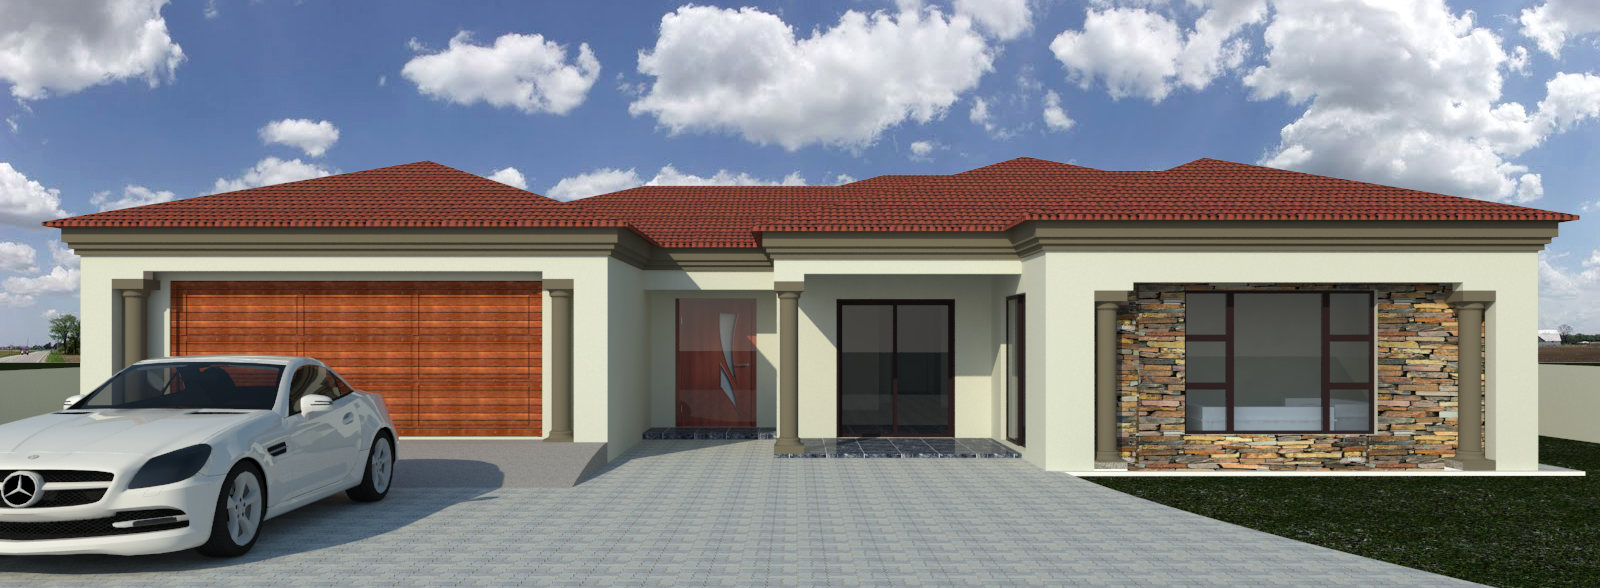 My house plans south africa my house plans most for My house design build